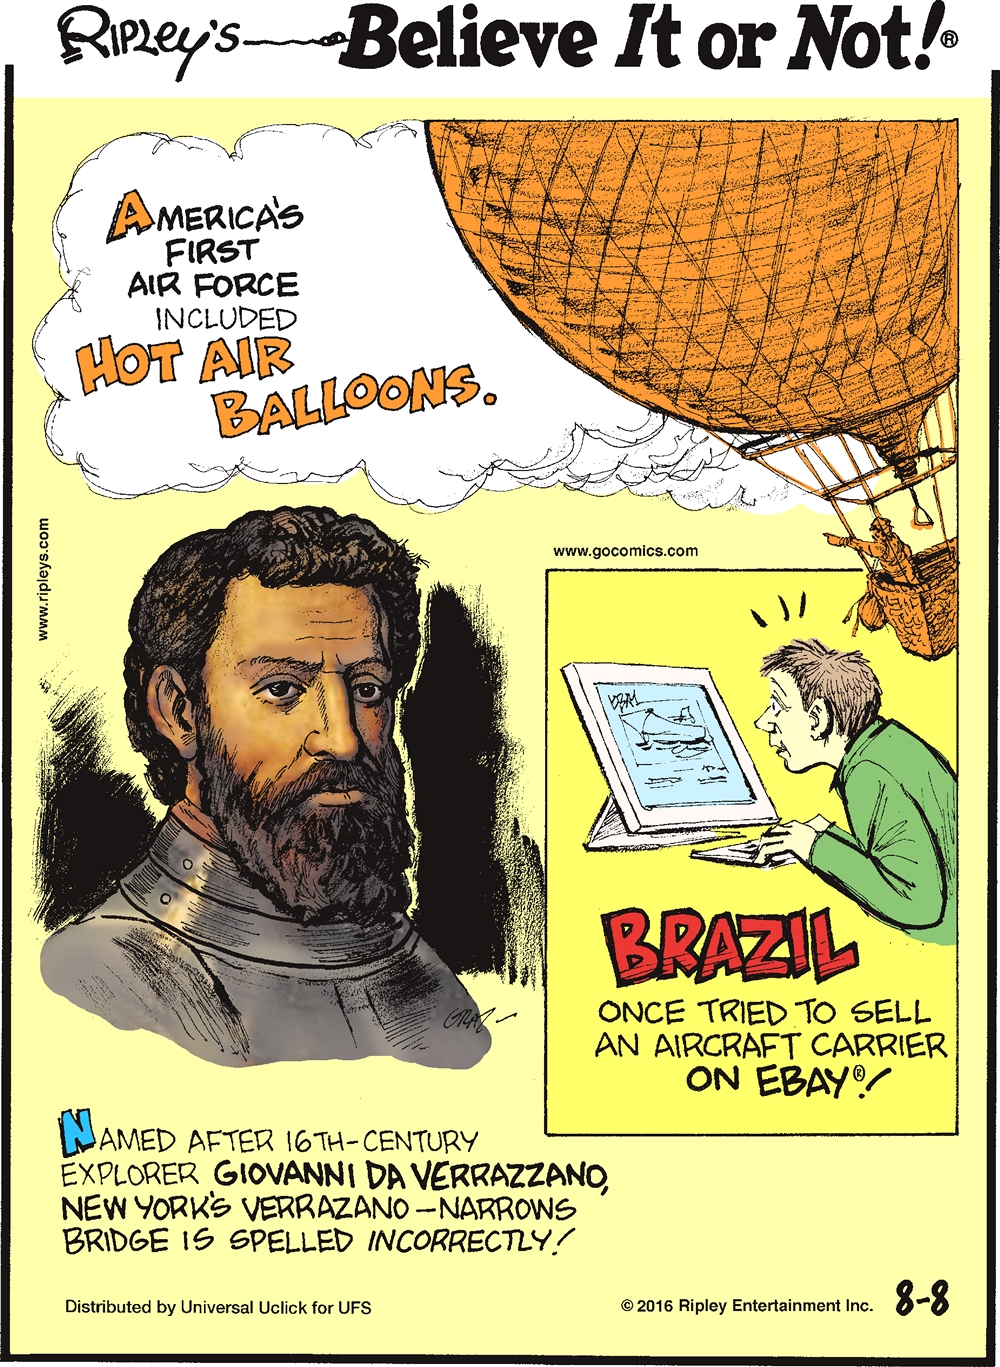 America's first air force included hot air balloons. -------------------- Named after 16th-century explorer Giovanni de Verrazzano, New York's Verrrazano—Narrows Bridge is spelled incorrectly! -------------------- Brazil once tried to sell an aircraft carrier on eBay!